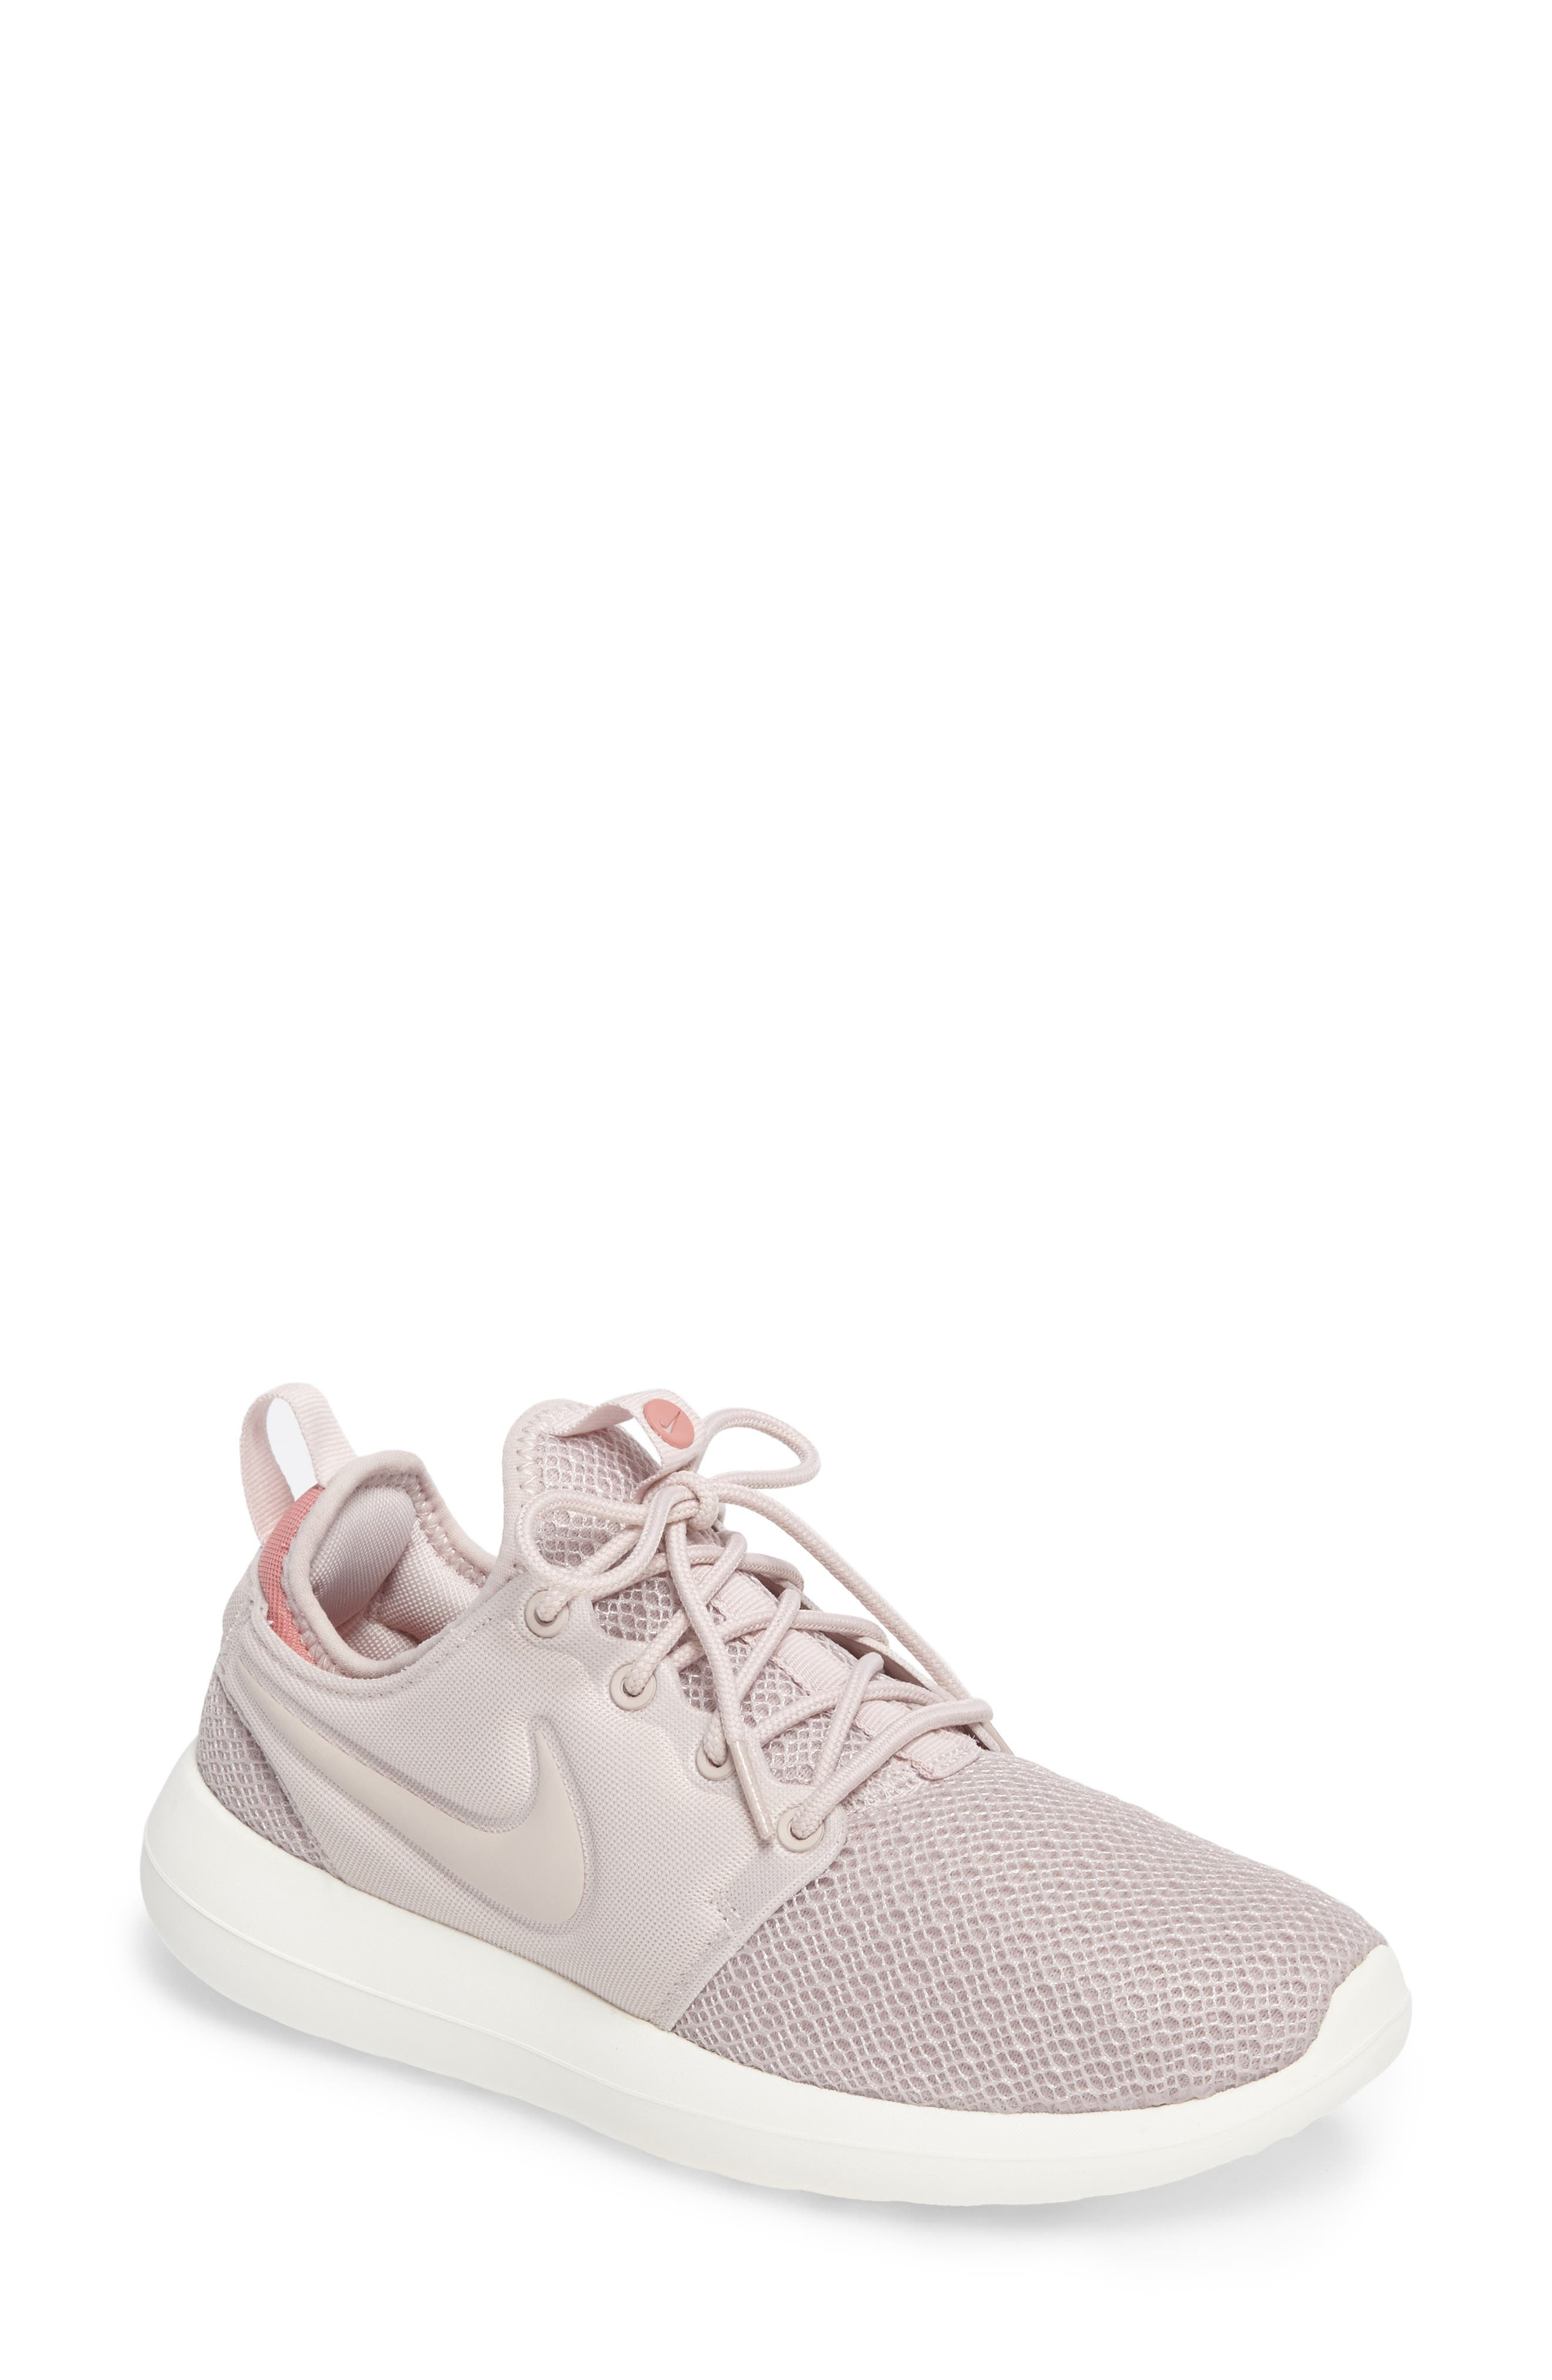 Nike Roshe Two Sneaker (Women)